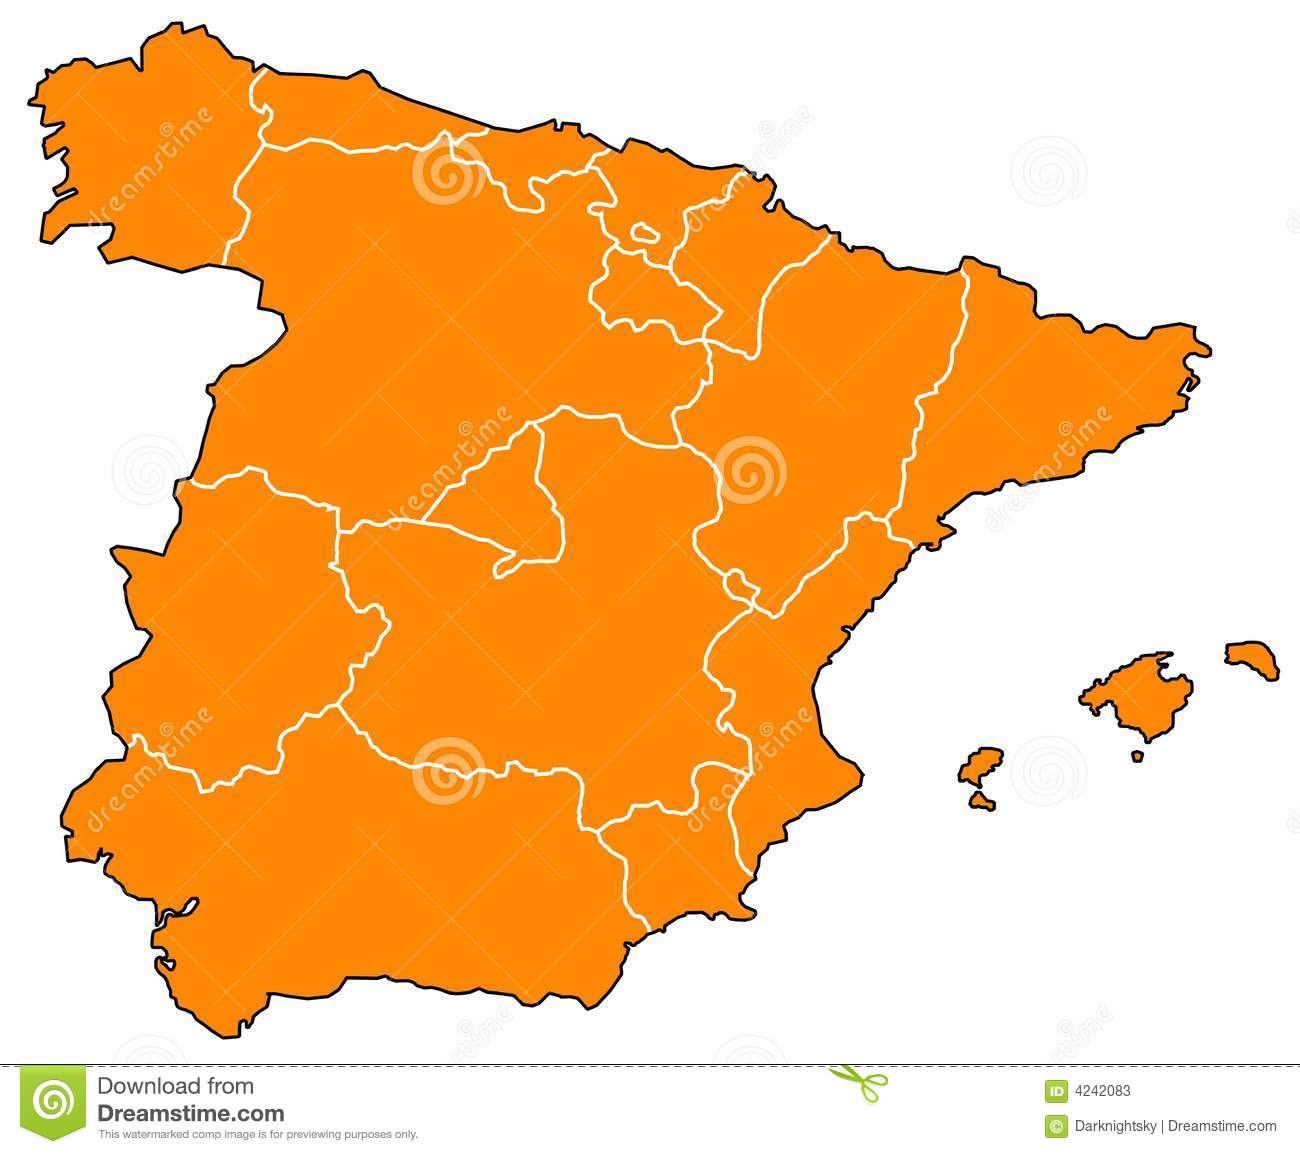 Map Of Spain Download Free.Map Of Spain Stock Illustration Illustration Of Icon 4242083